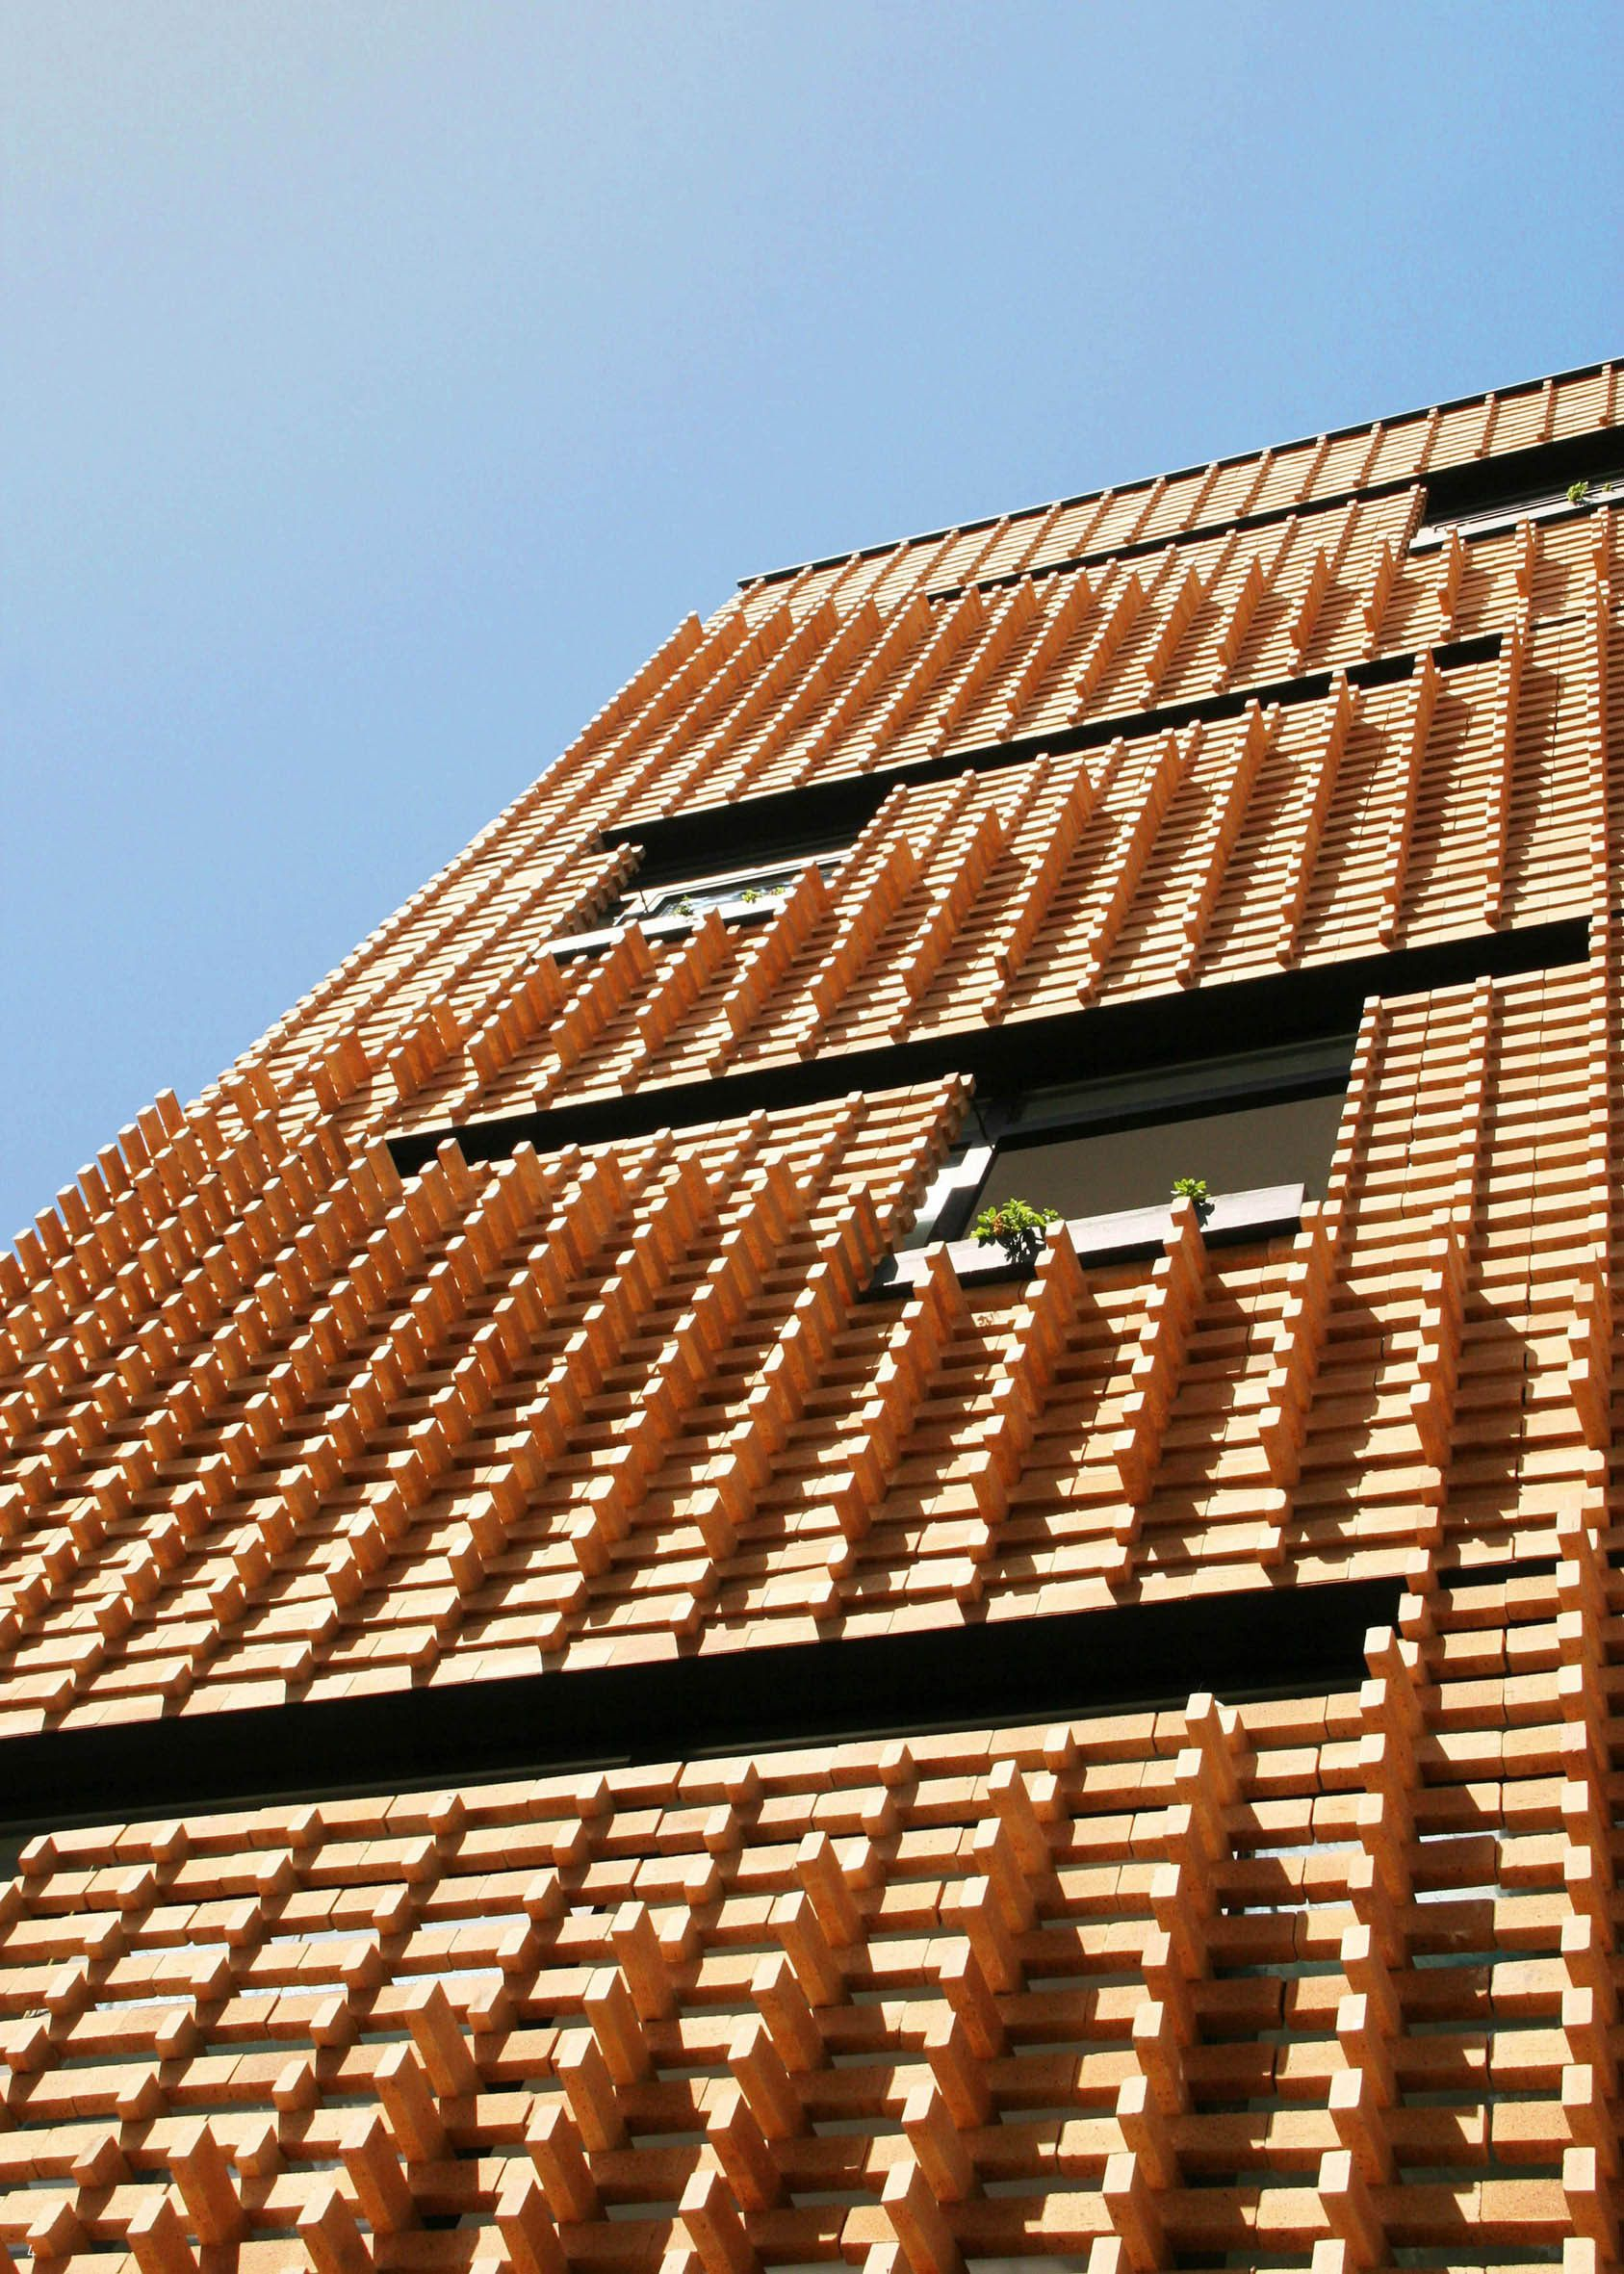 pleted in 2011 by Alireza Mashhadmirza in IranThis project has been shortlisted for the housing category